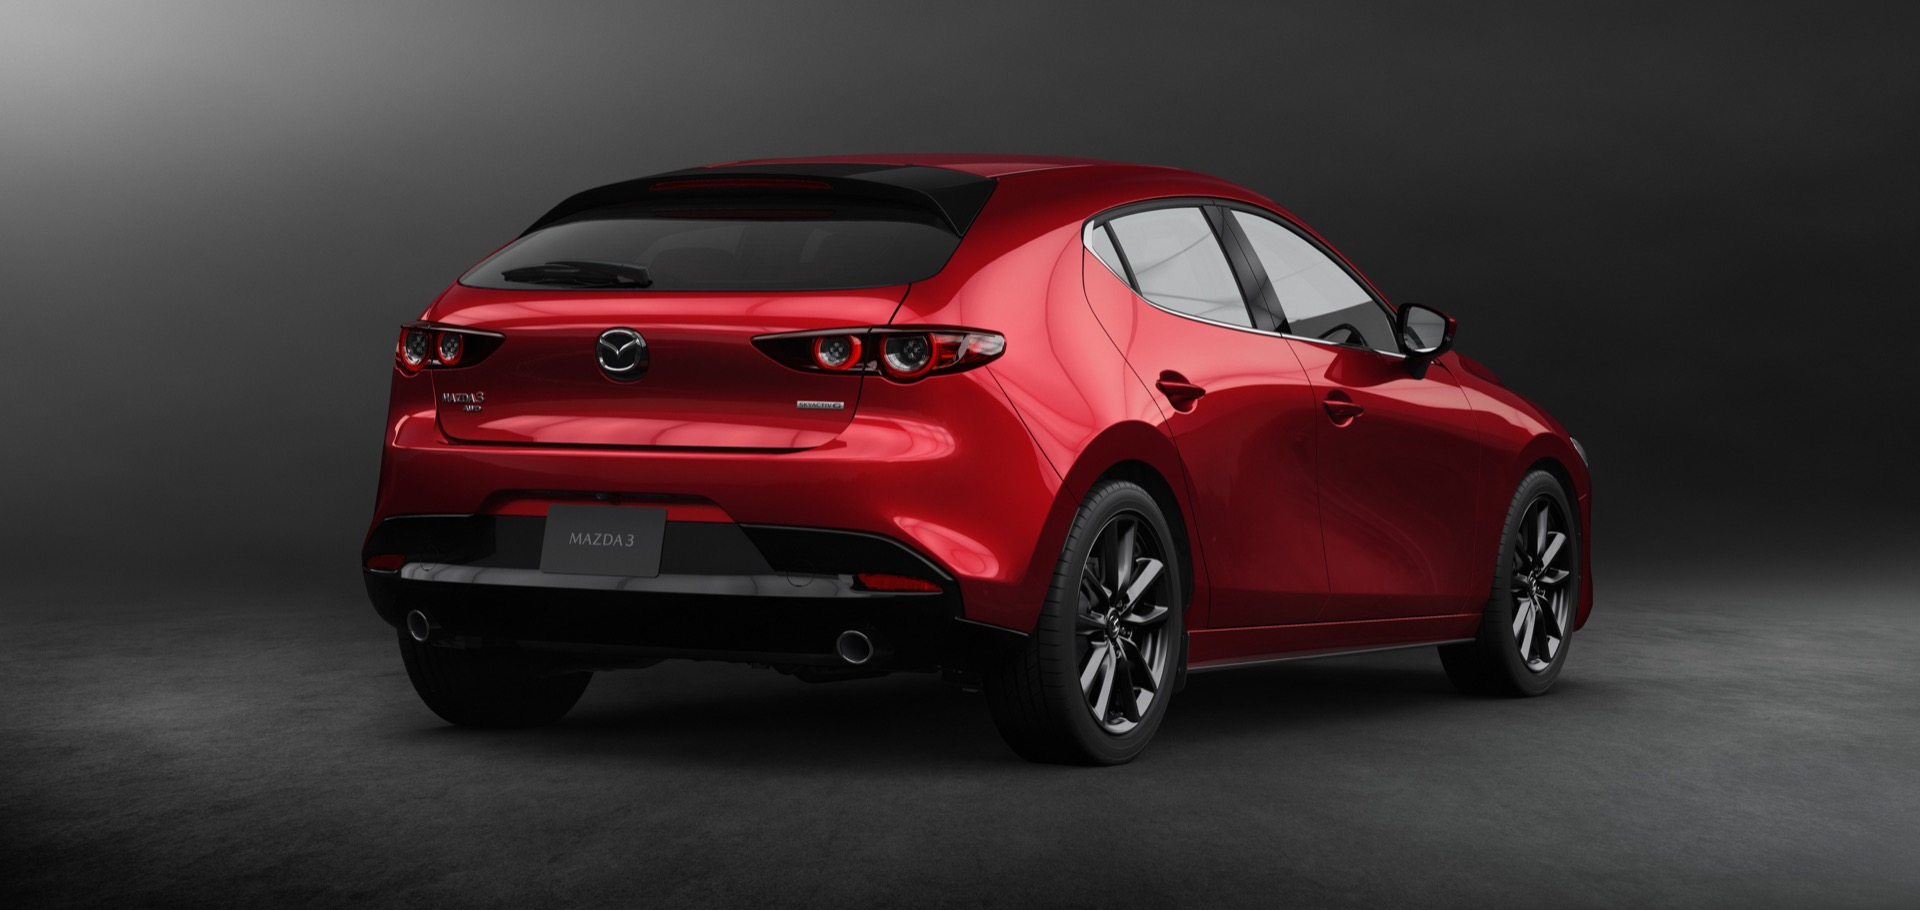 2019 mazda 3 brings premium looks tech to compact segment. Black Bedroom Furniture Sets. Home Design Ideas